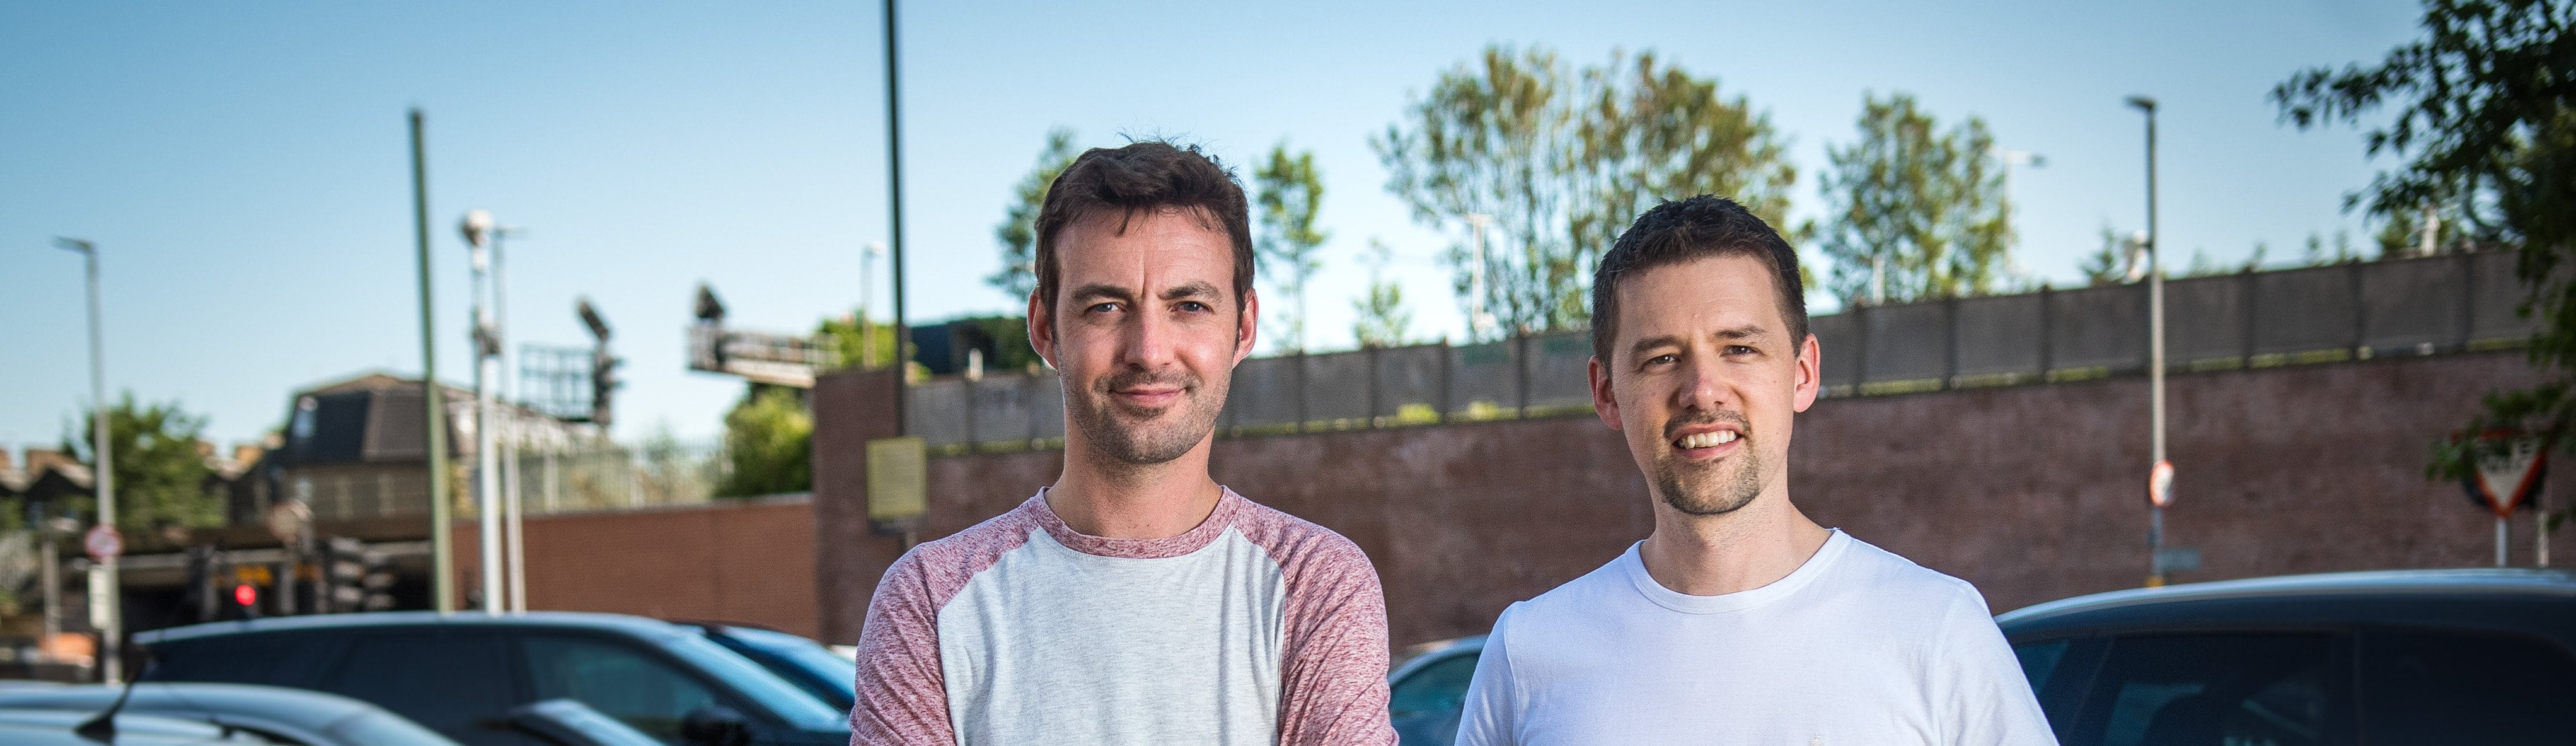 Pay-as-you-drive insurer By Miles raises £1m Seed